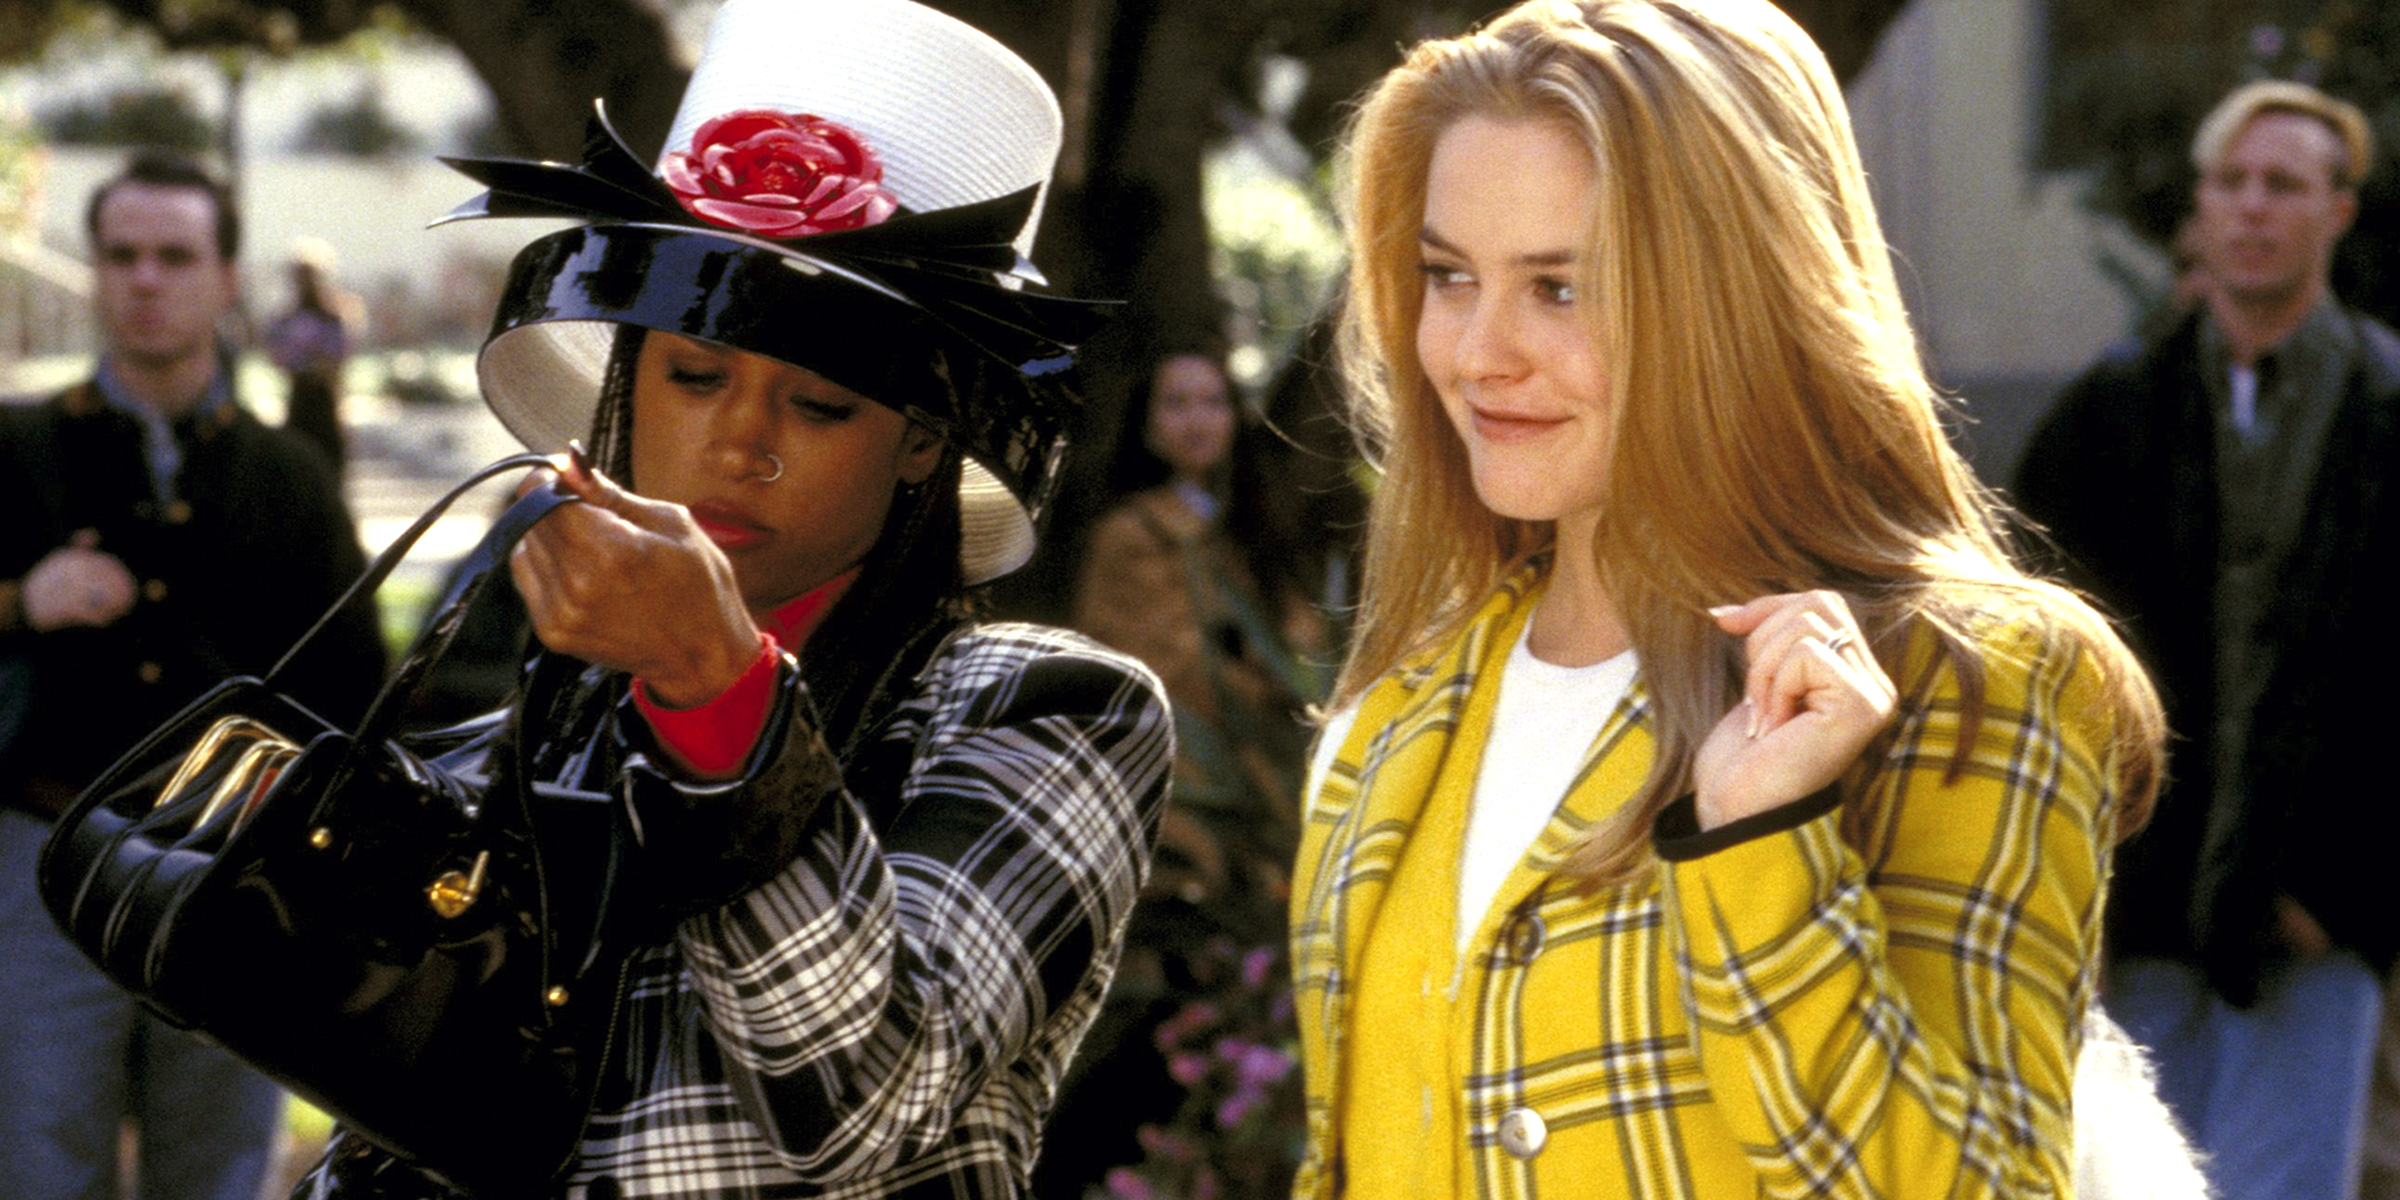 Alicia Silverstone's yellow outfit from Clueless